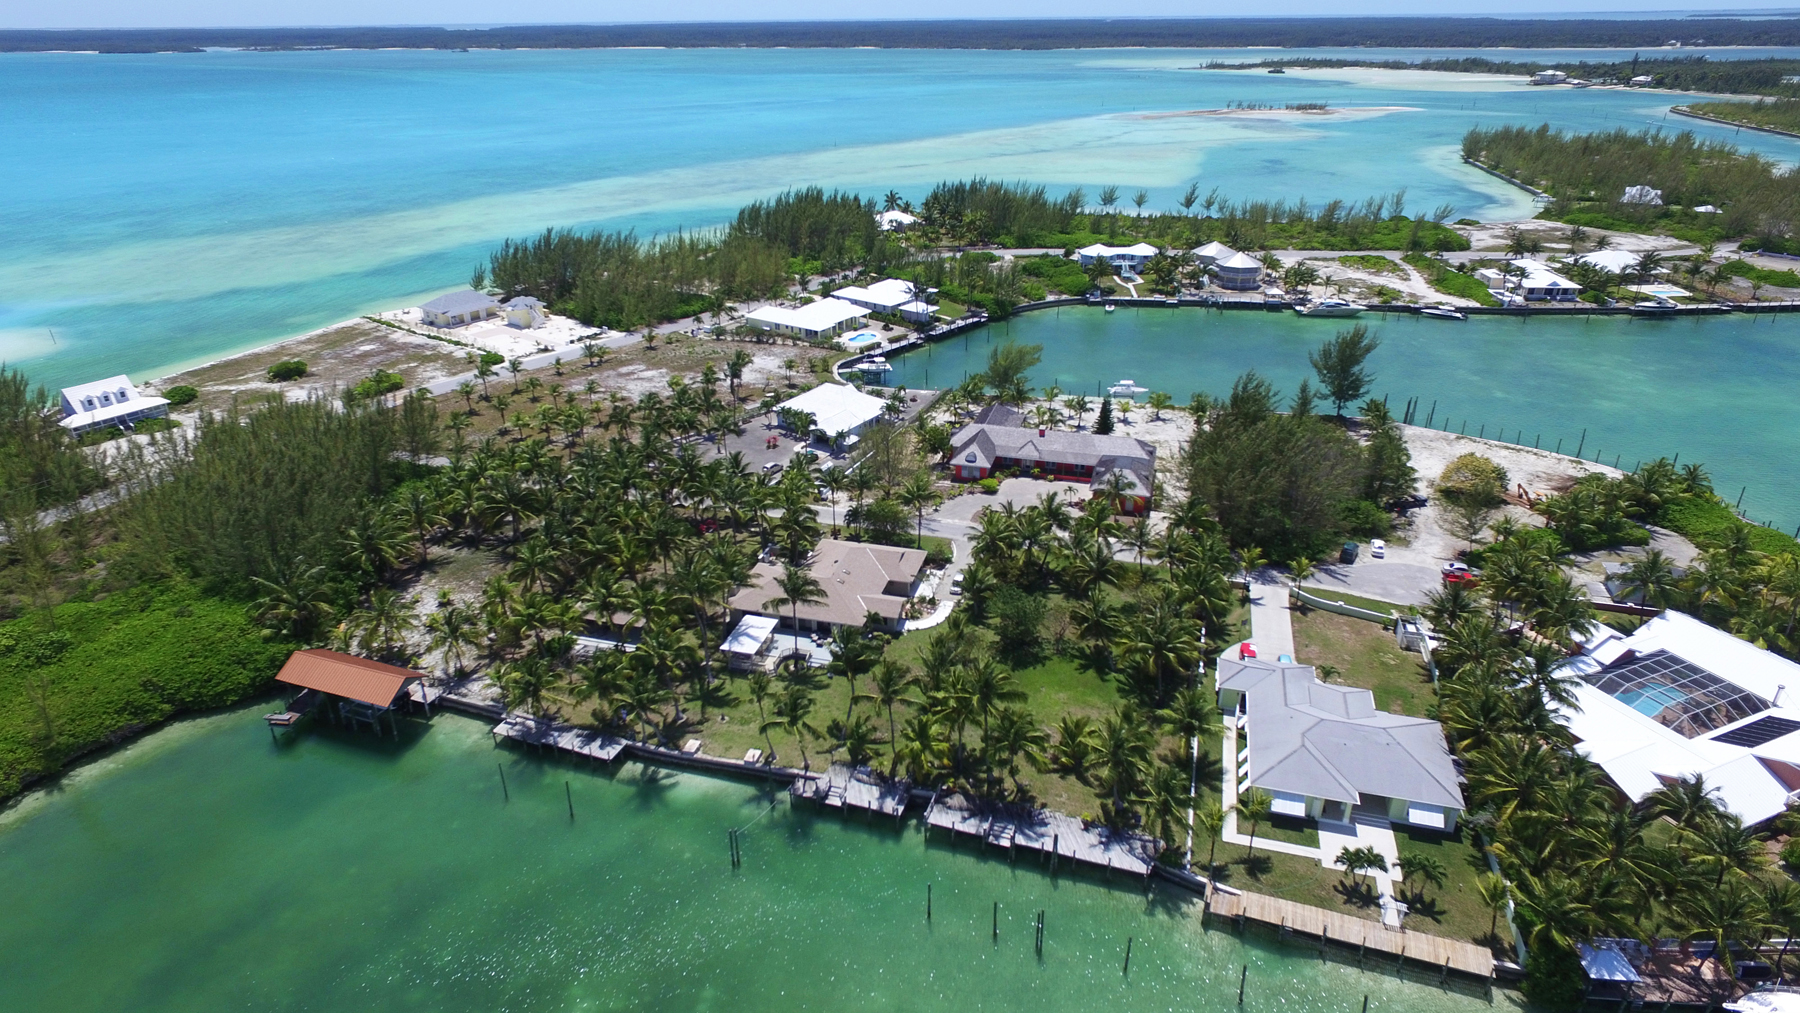 Land for Sale at Lot 34, Block 199 Treasure Cay, Abaco Bahamas